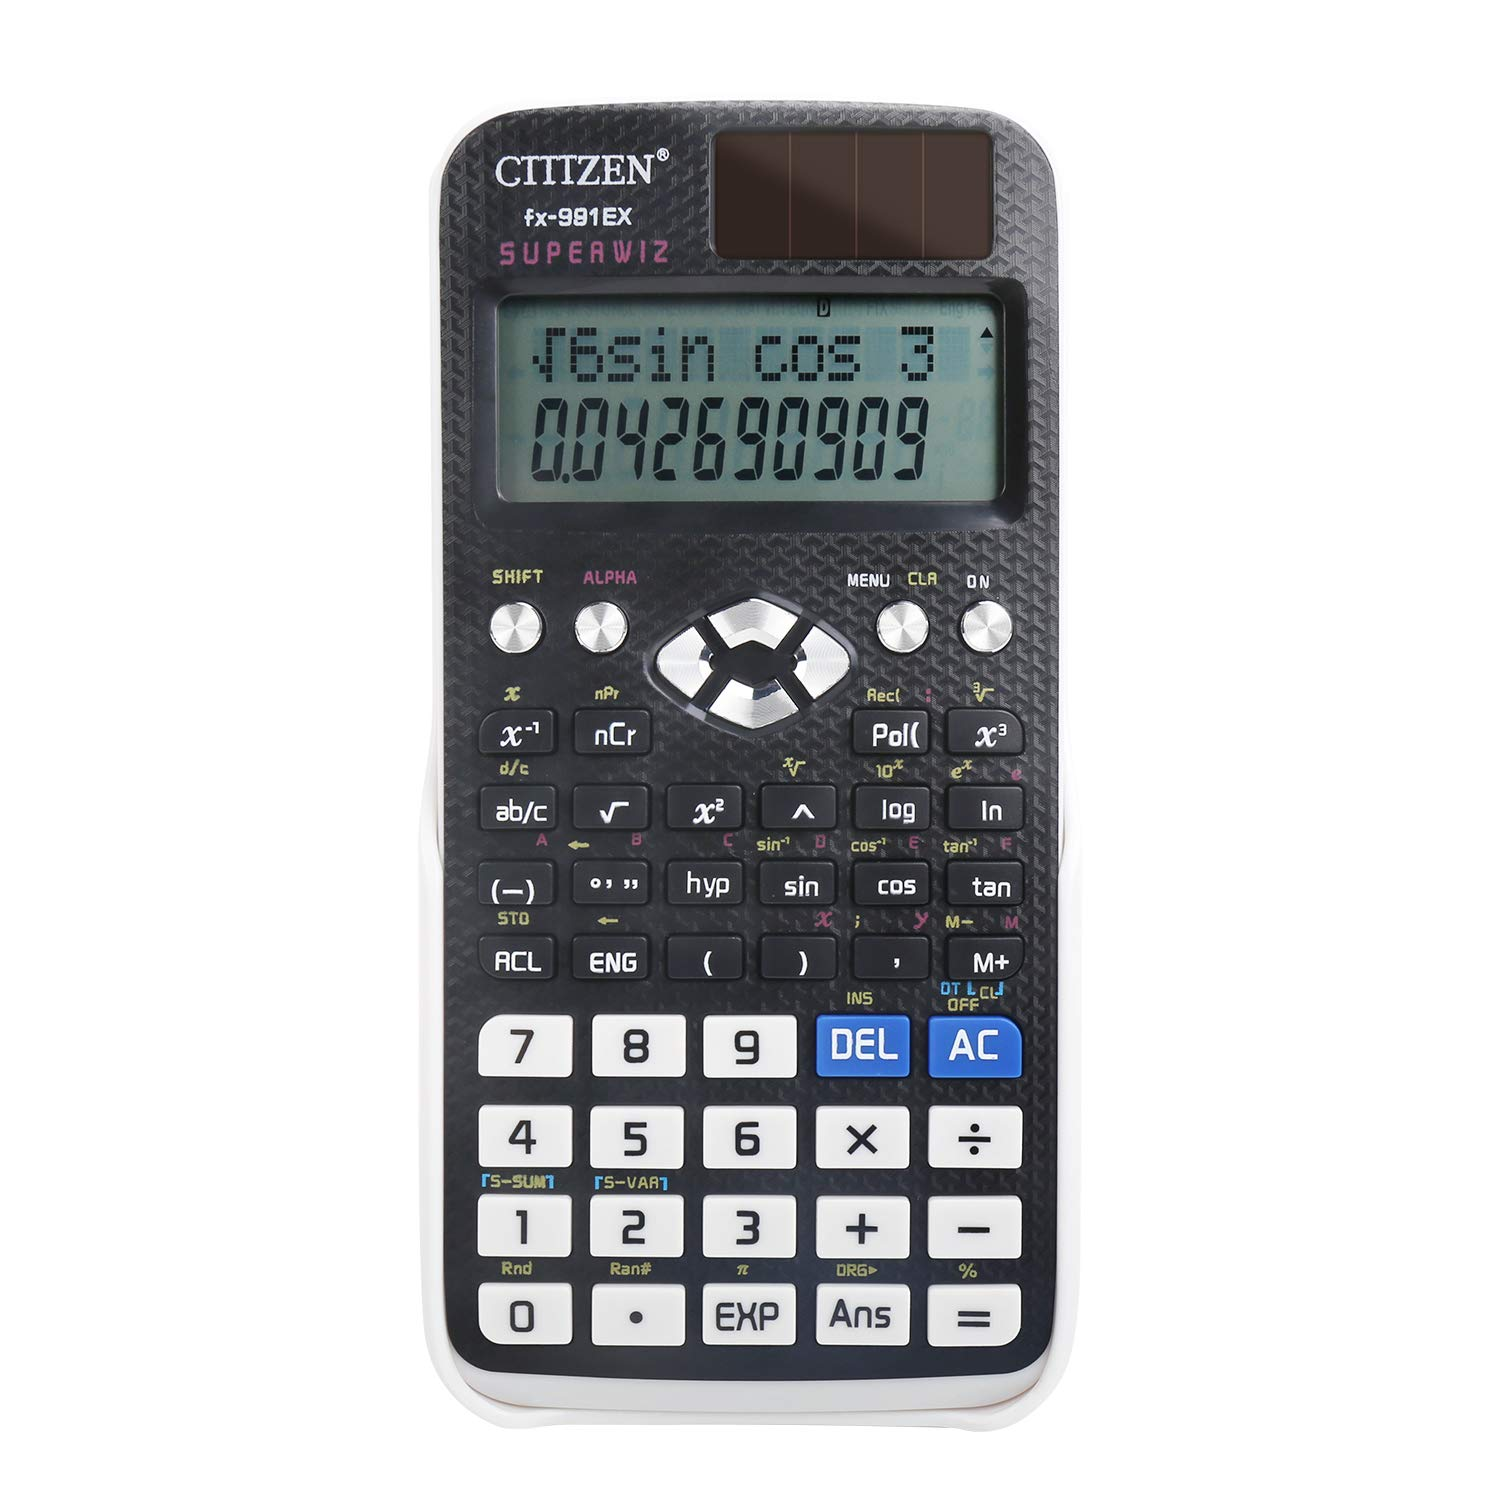 DricRoda Scientific Calculator, 240 Functions Calculator Engineering Calculator High School Calculator with Solar Power & 2-Line Display for College, Office, Business by DricRoda